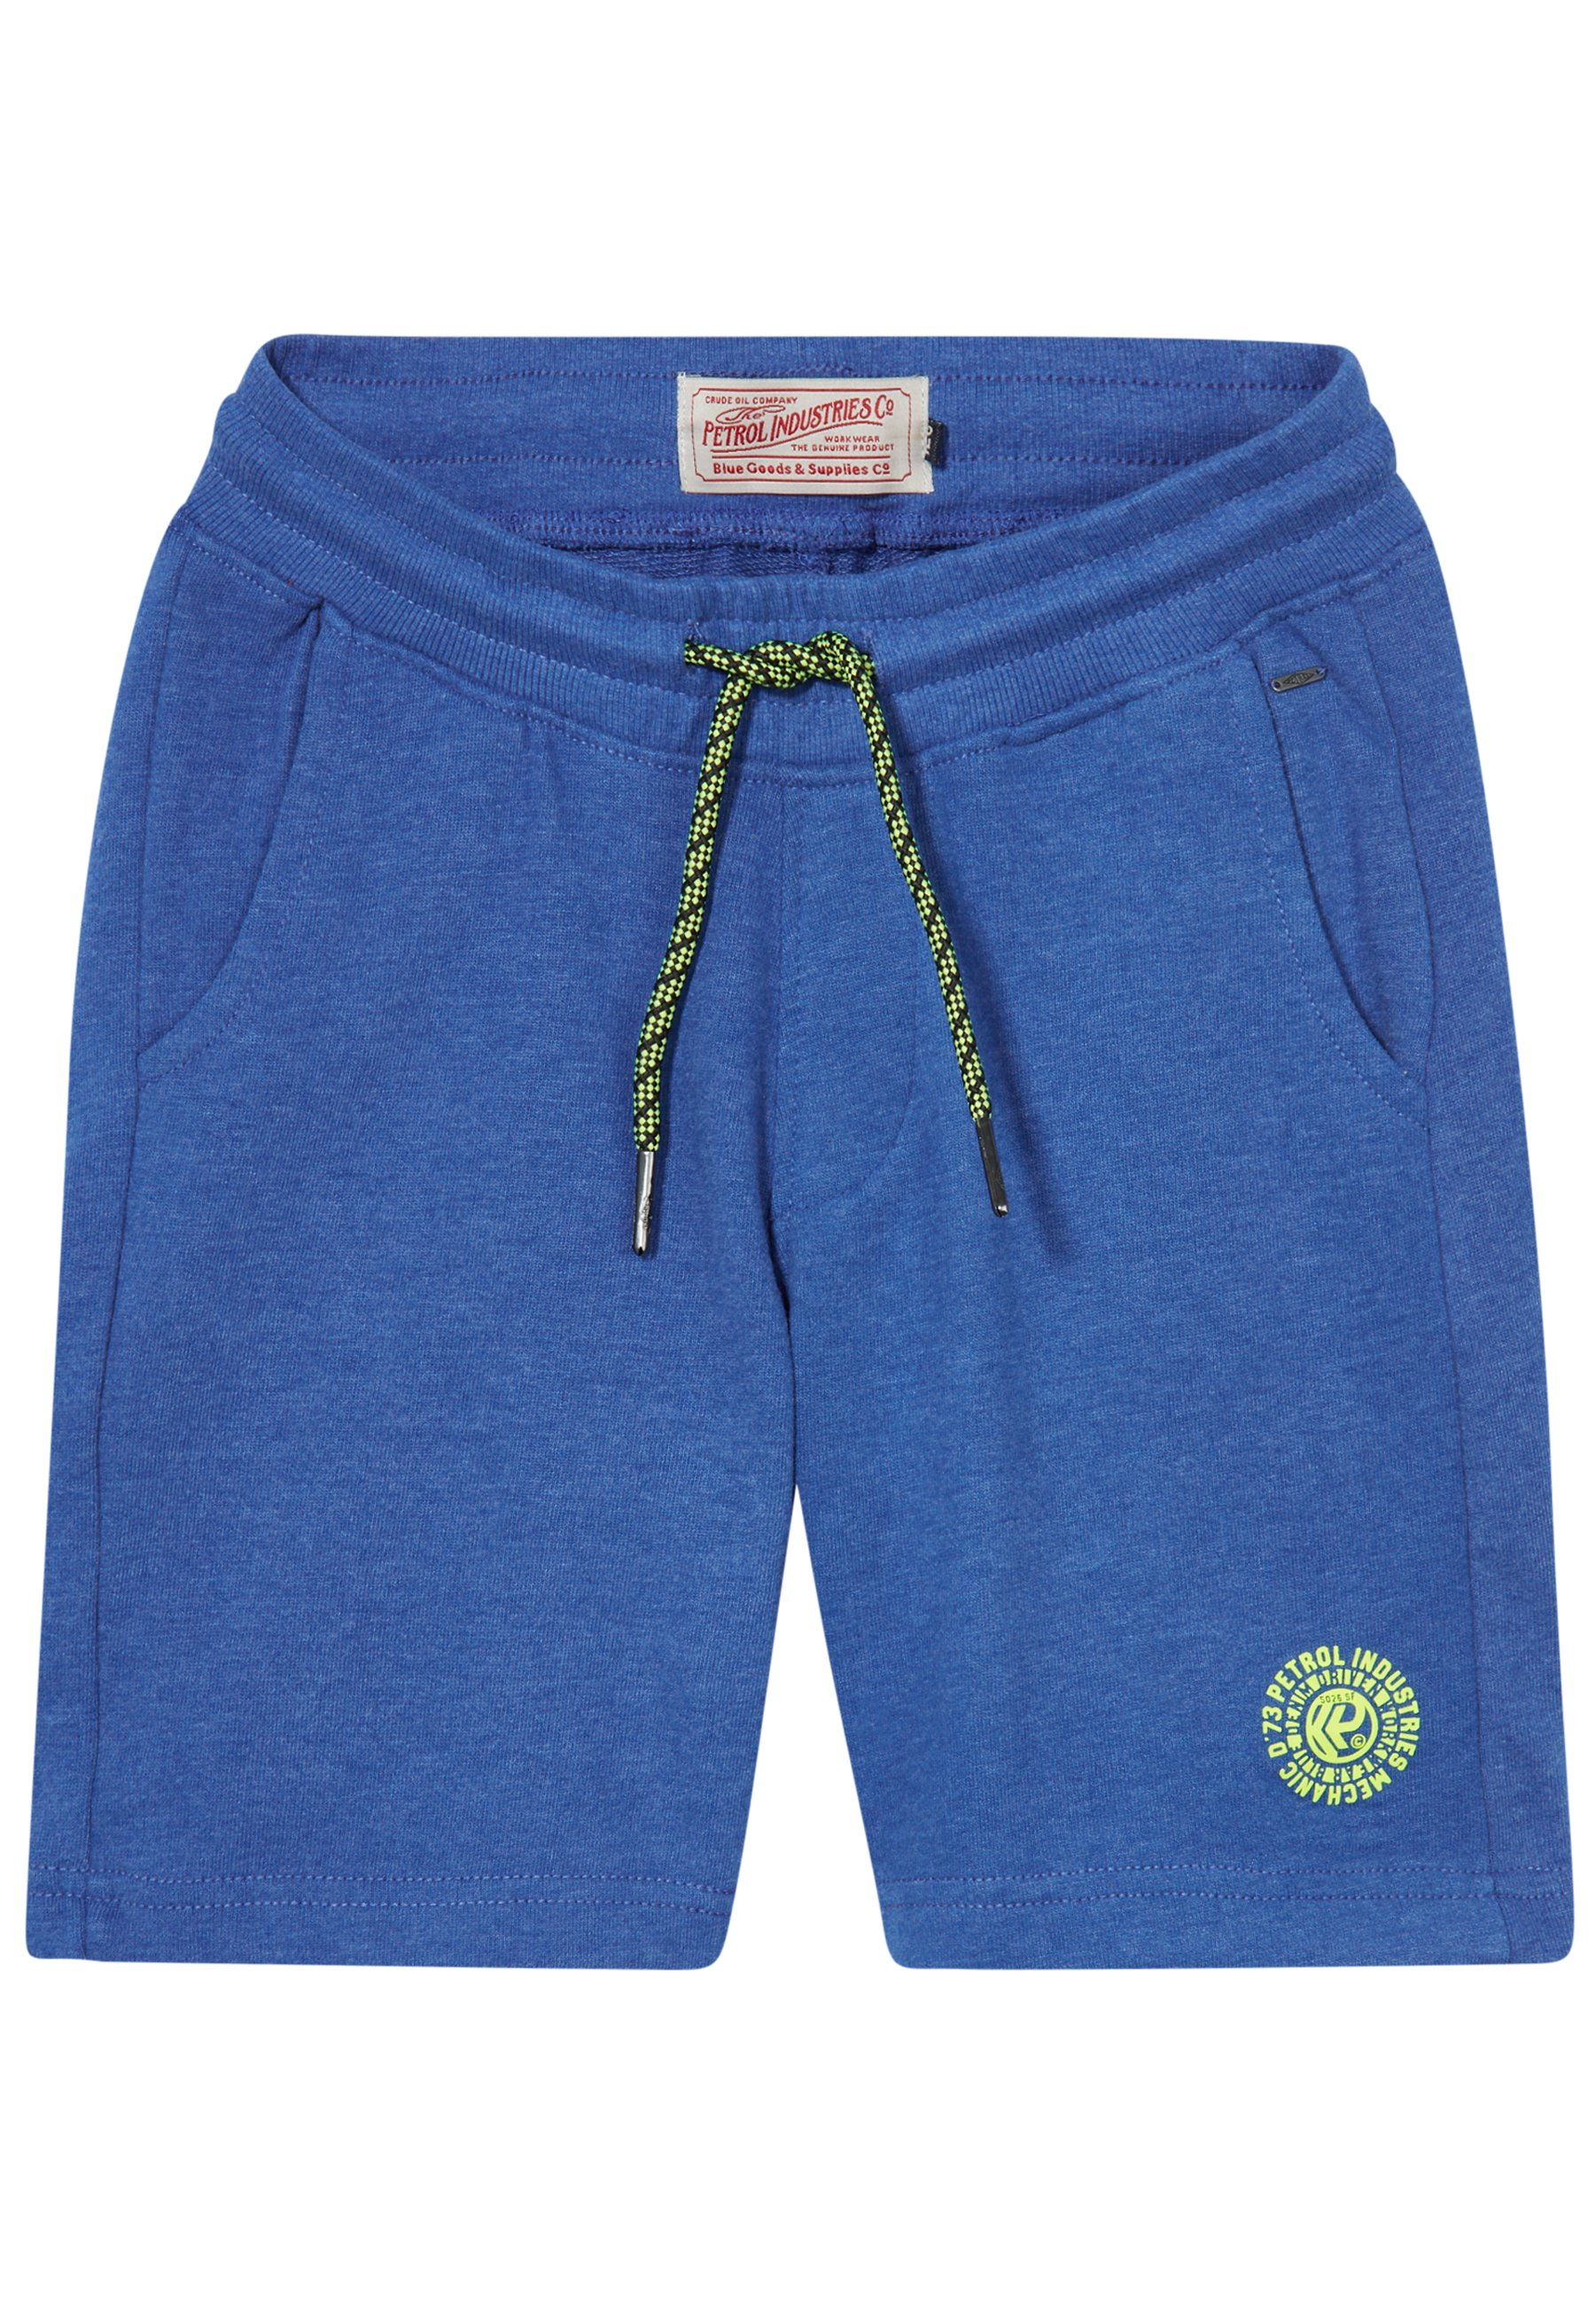 Petrol Industries Tracksuit Bottoms - Seascape